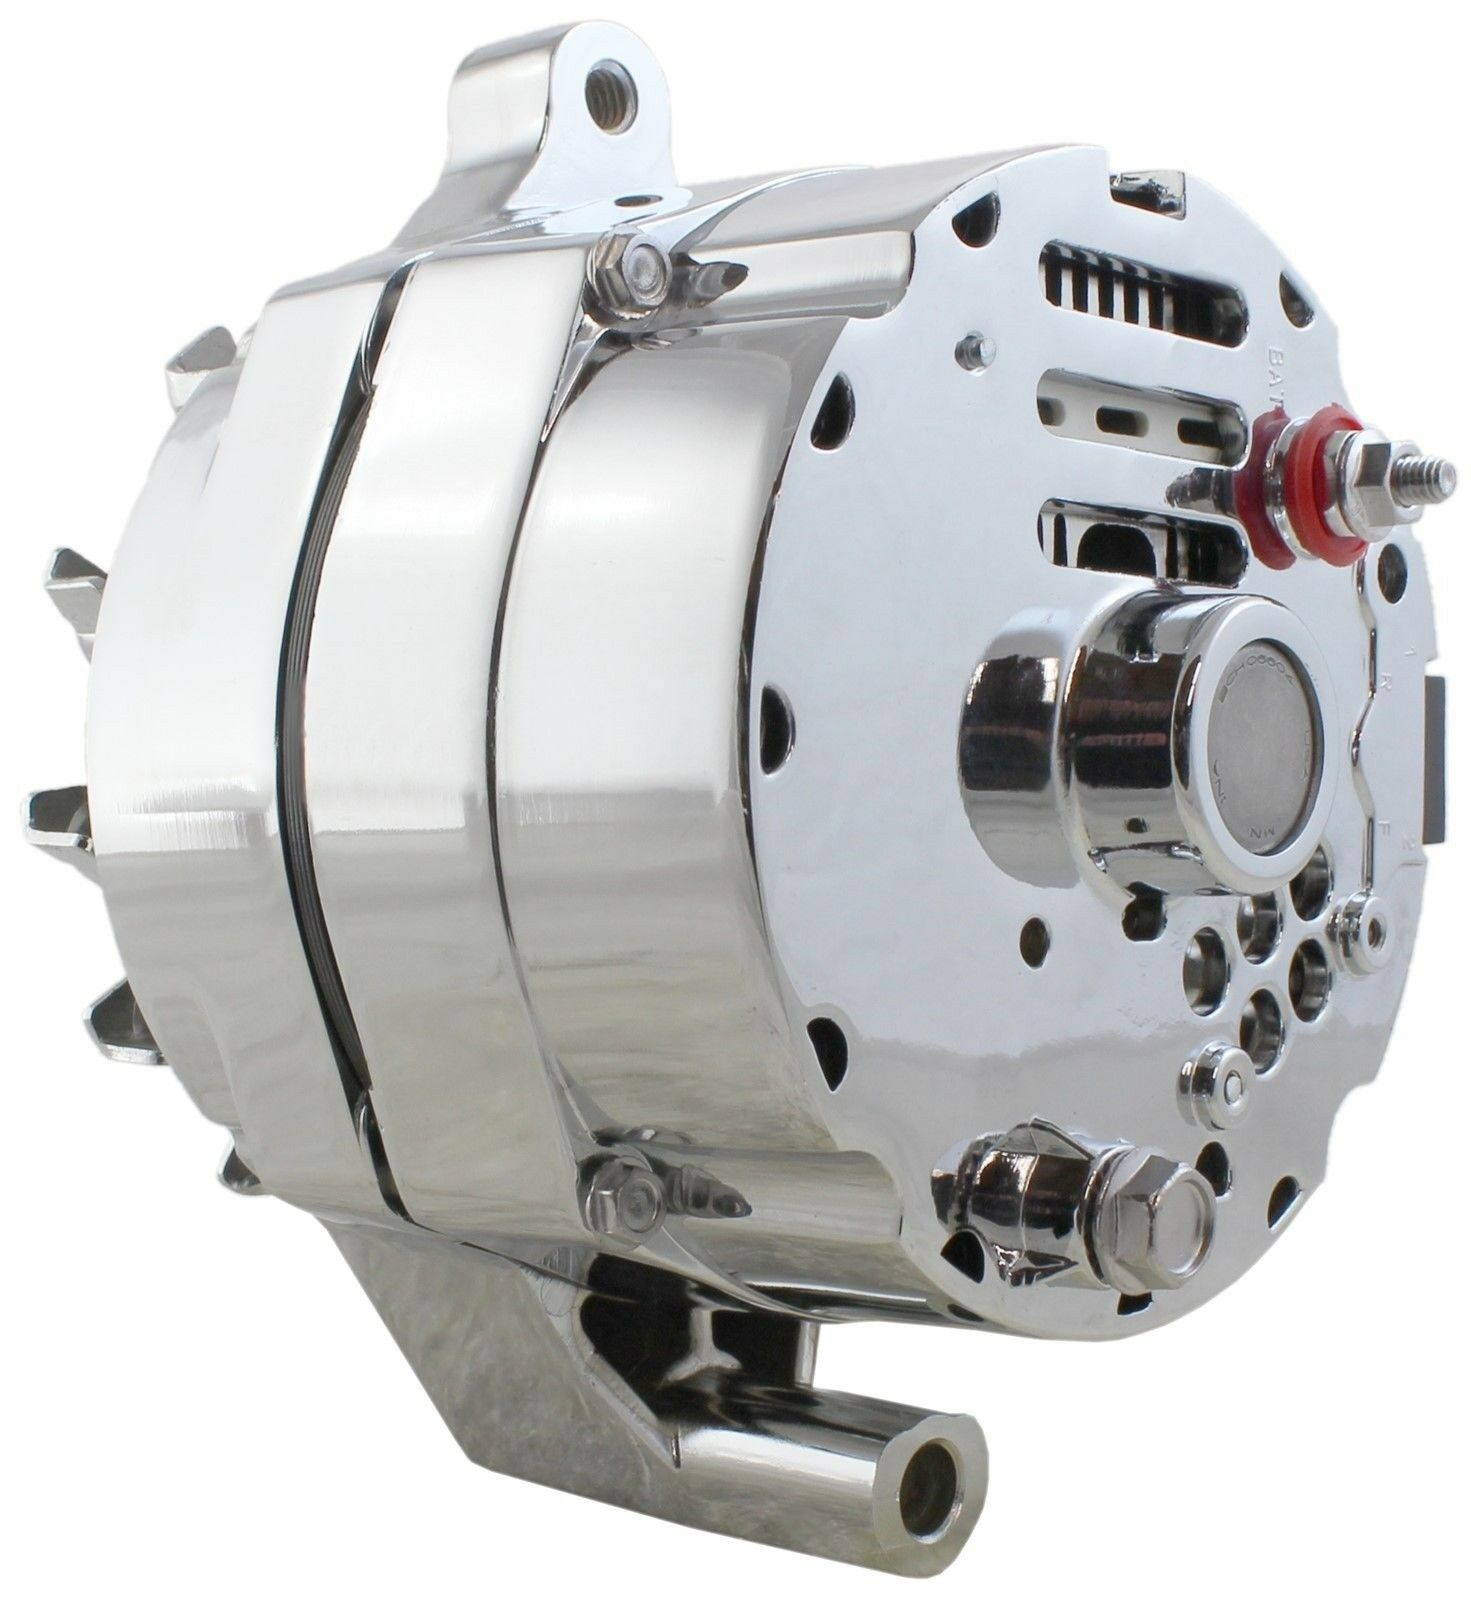 NEW ONE-WIRE ALTERNATOR 140 Amps Chrome 12V Ford 1G Hybrid with GM ...